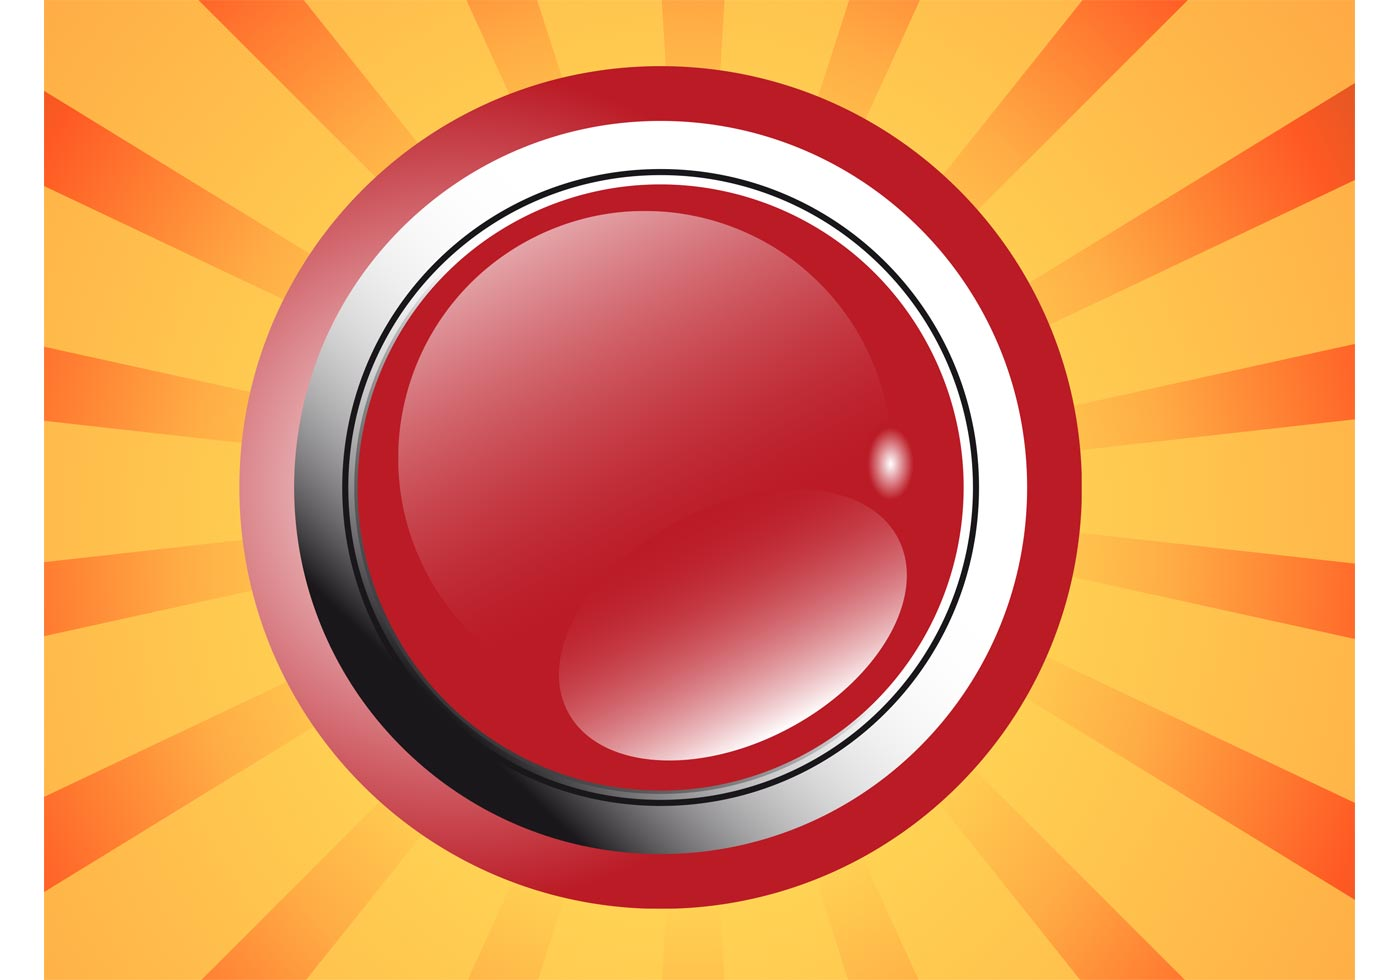 Emergency Button Free Vector Art 3125 Free Downloads